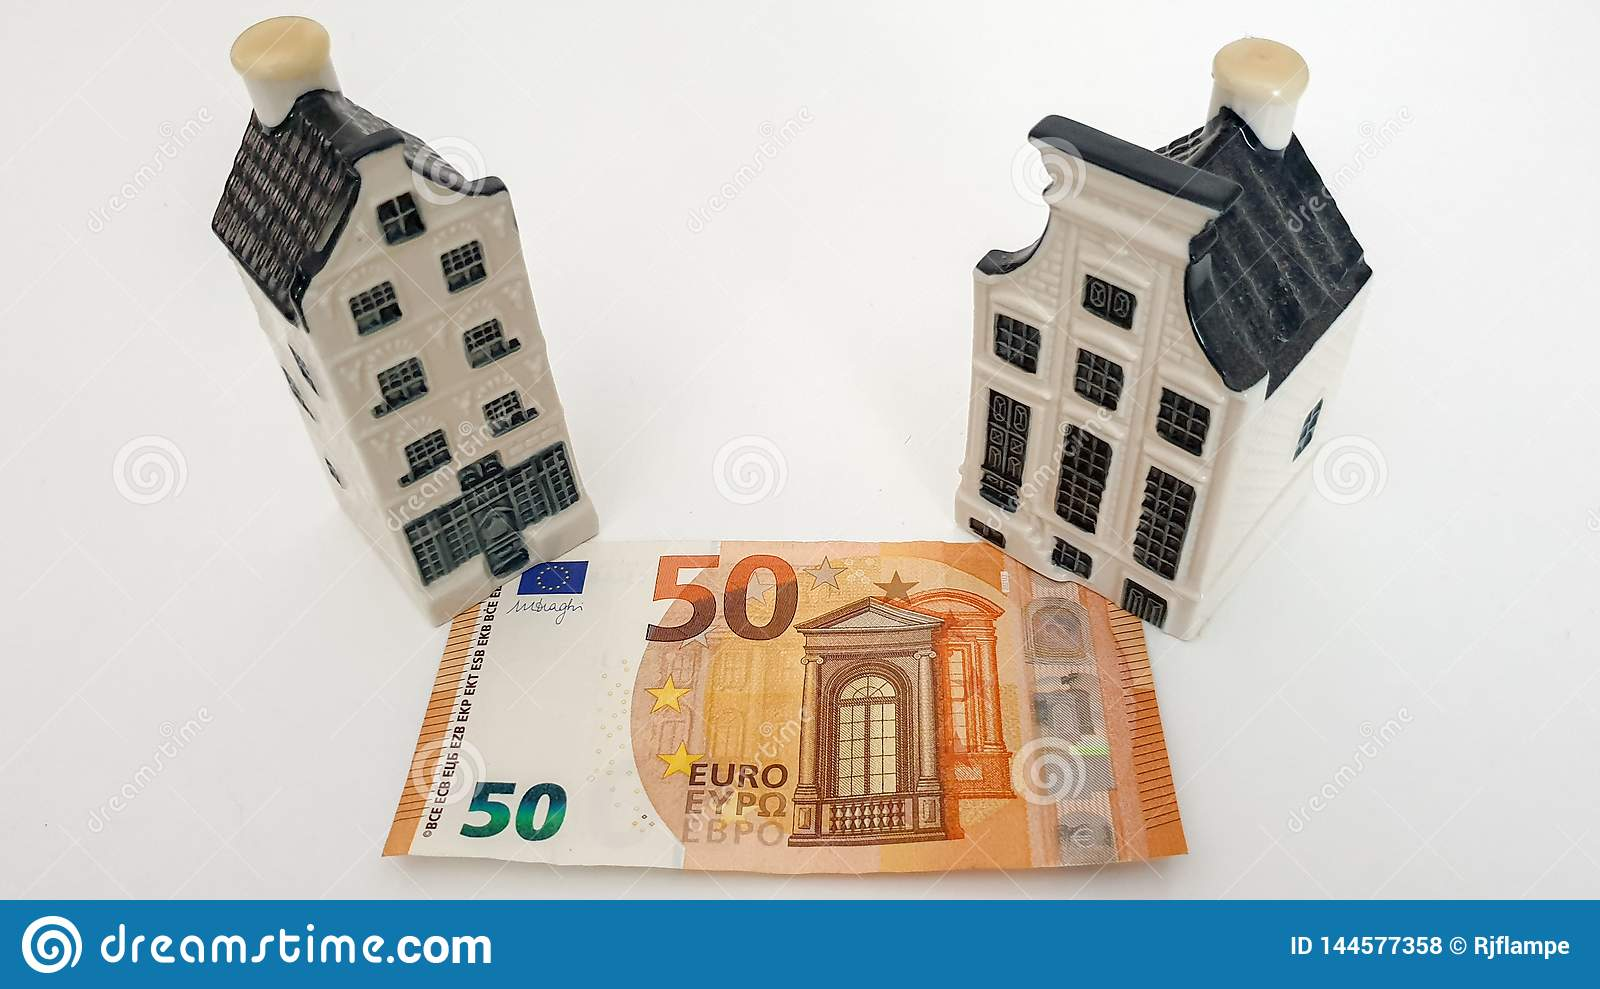 Drunen, Nederland - April 9 2019: KLM Delft Blue House with Money, Currency Euro. 50 euro. Miniature house with mortgage